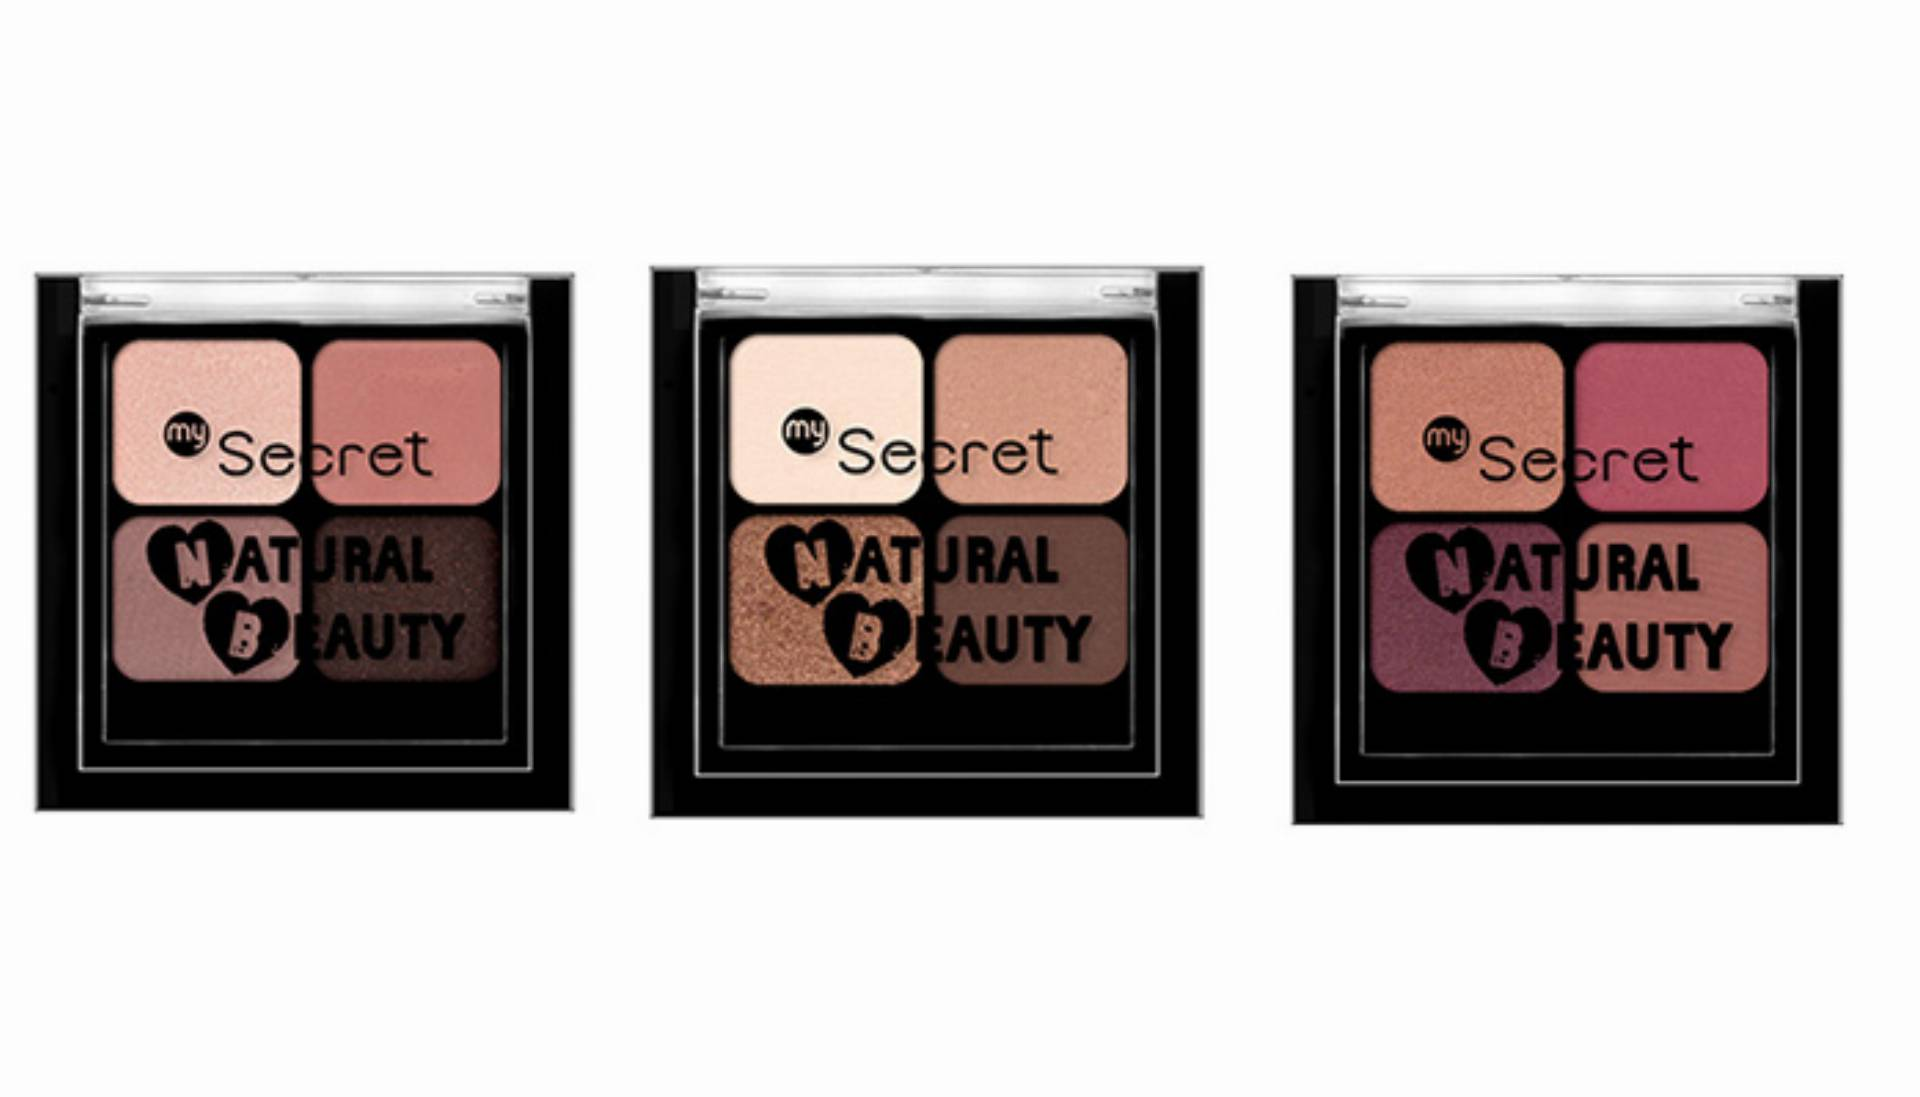 NATURAL BEAUTY EYESHADOW PALETTE